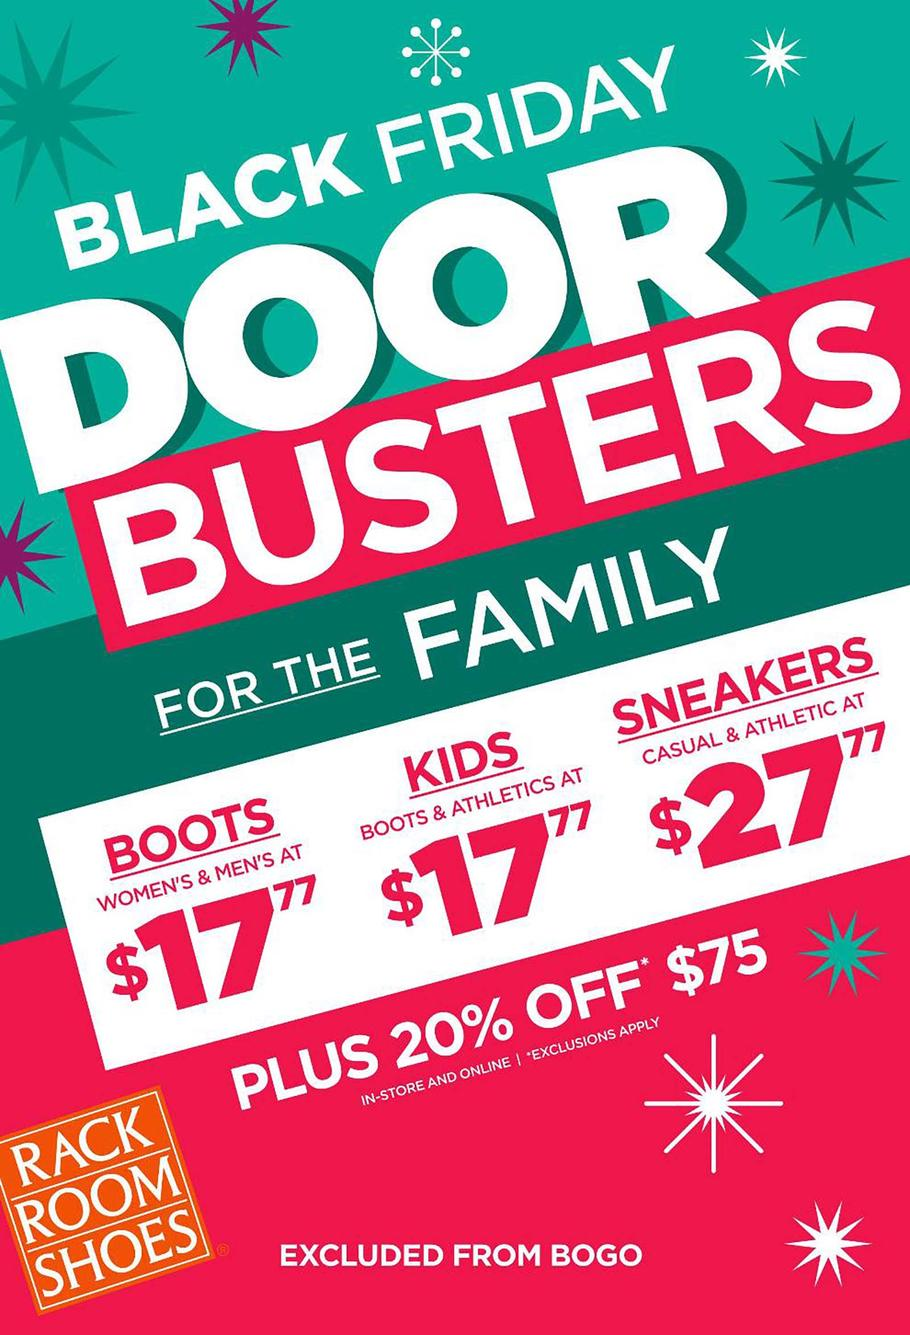 Rack Room Shoes Black Friday Ad Scan 2019